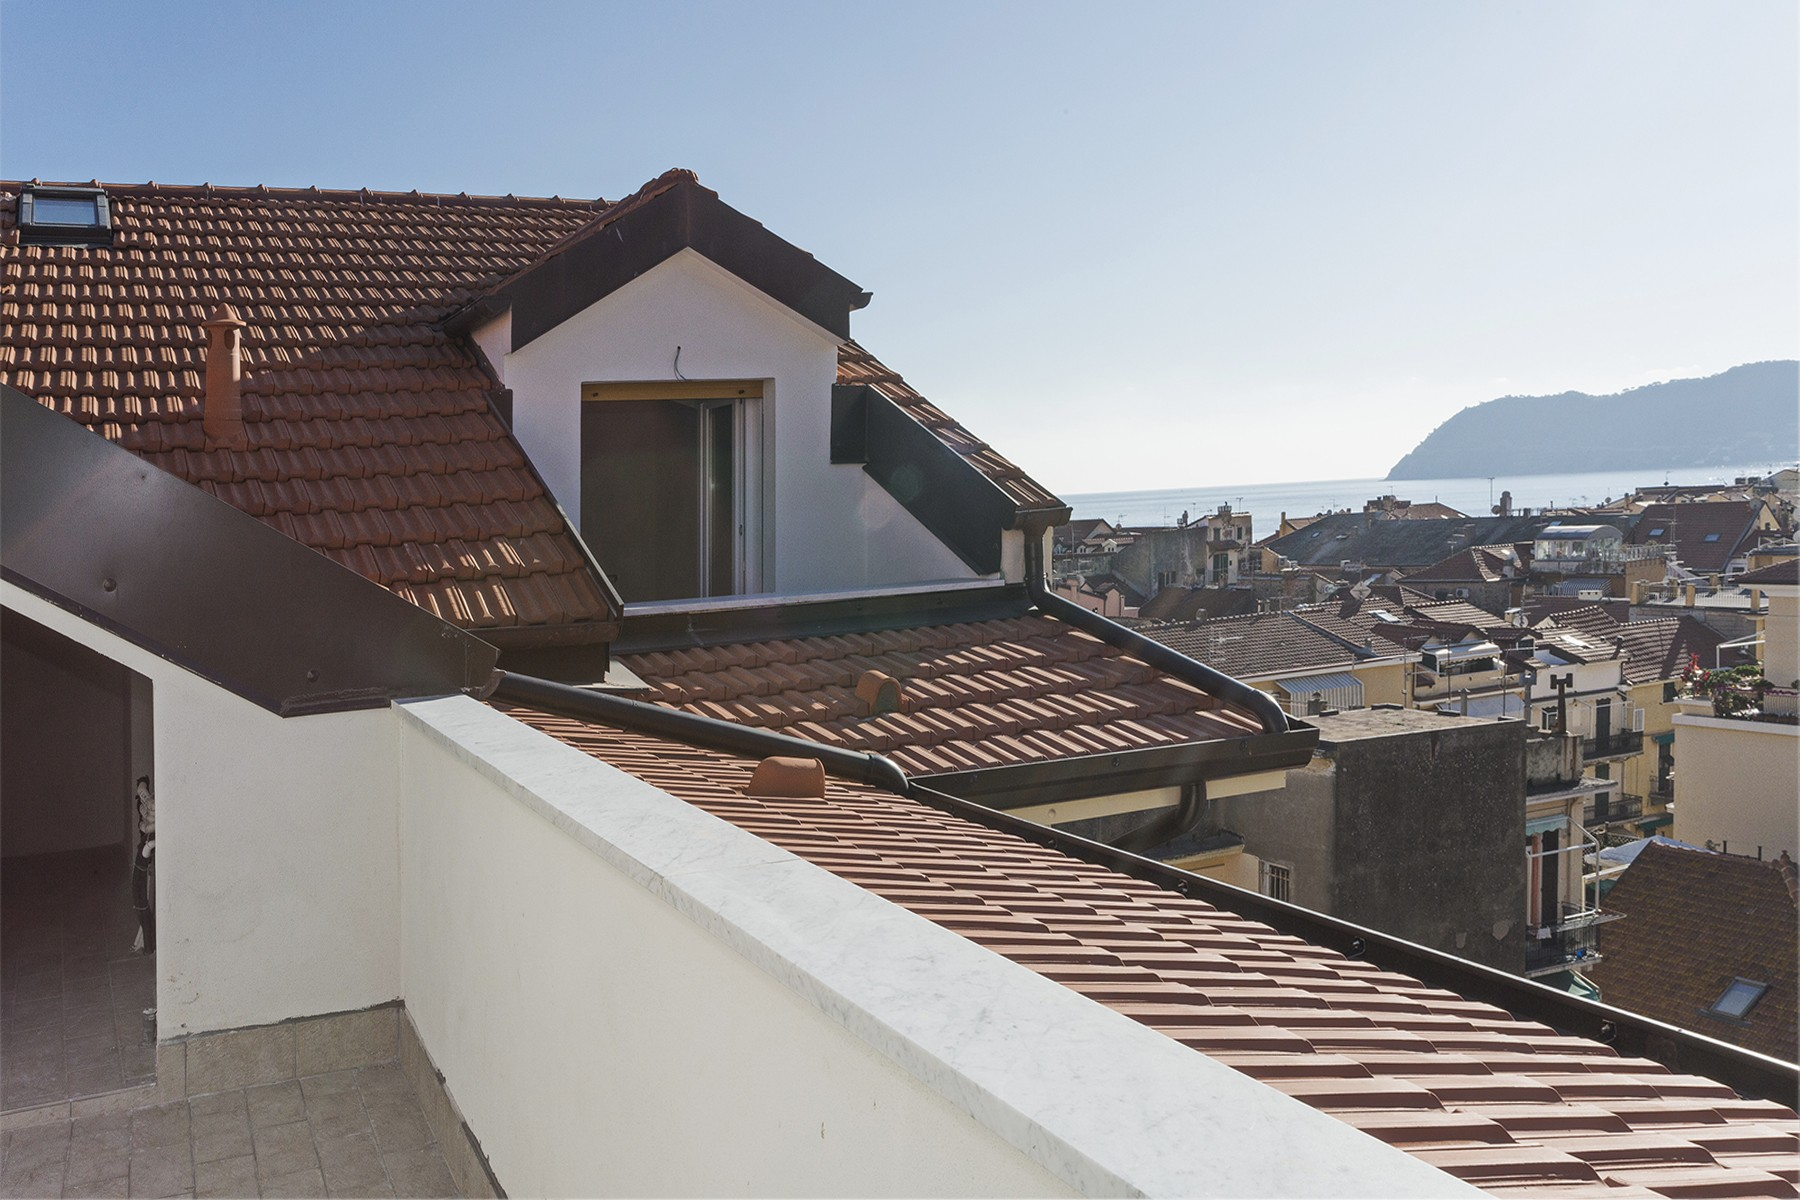 Single Family Home for Sale at See view Penthouse in Alassio Via Mazzini Alassio, Savona 17021 Italy